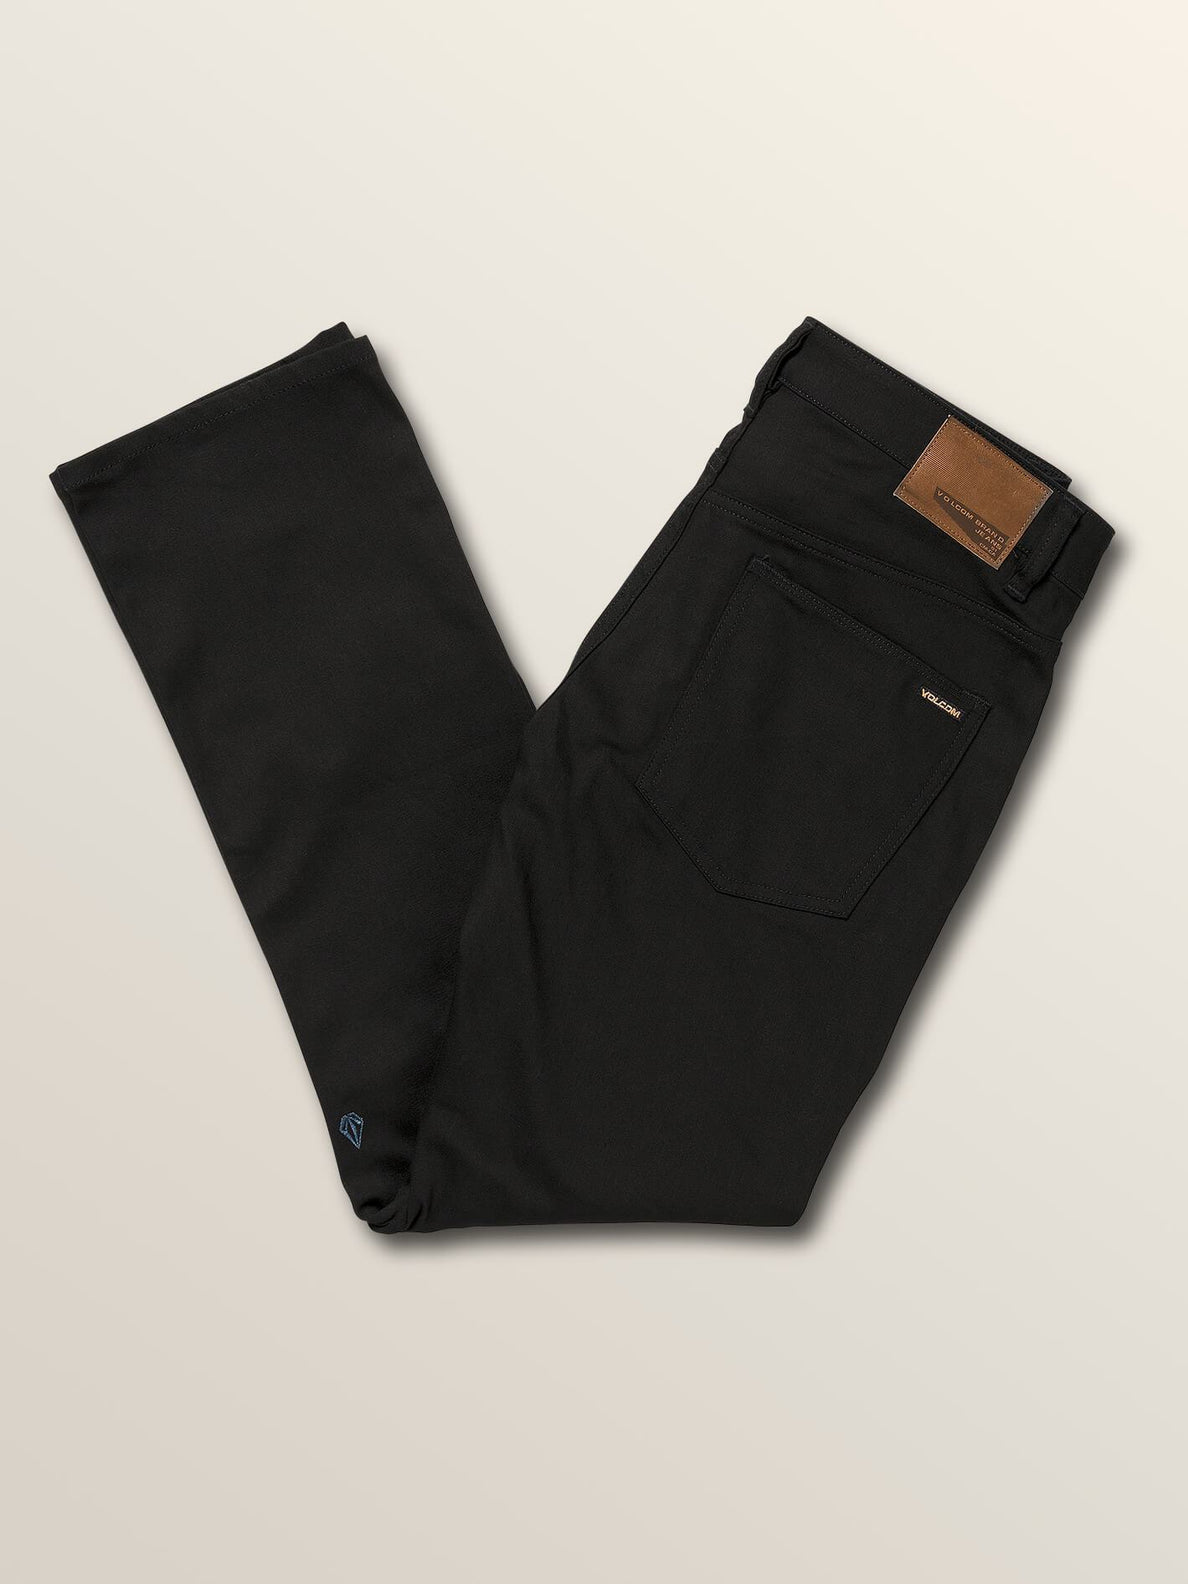 Jean Solver Denim - Black On Black